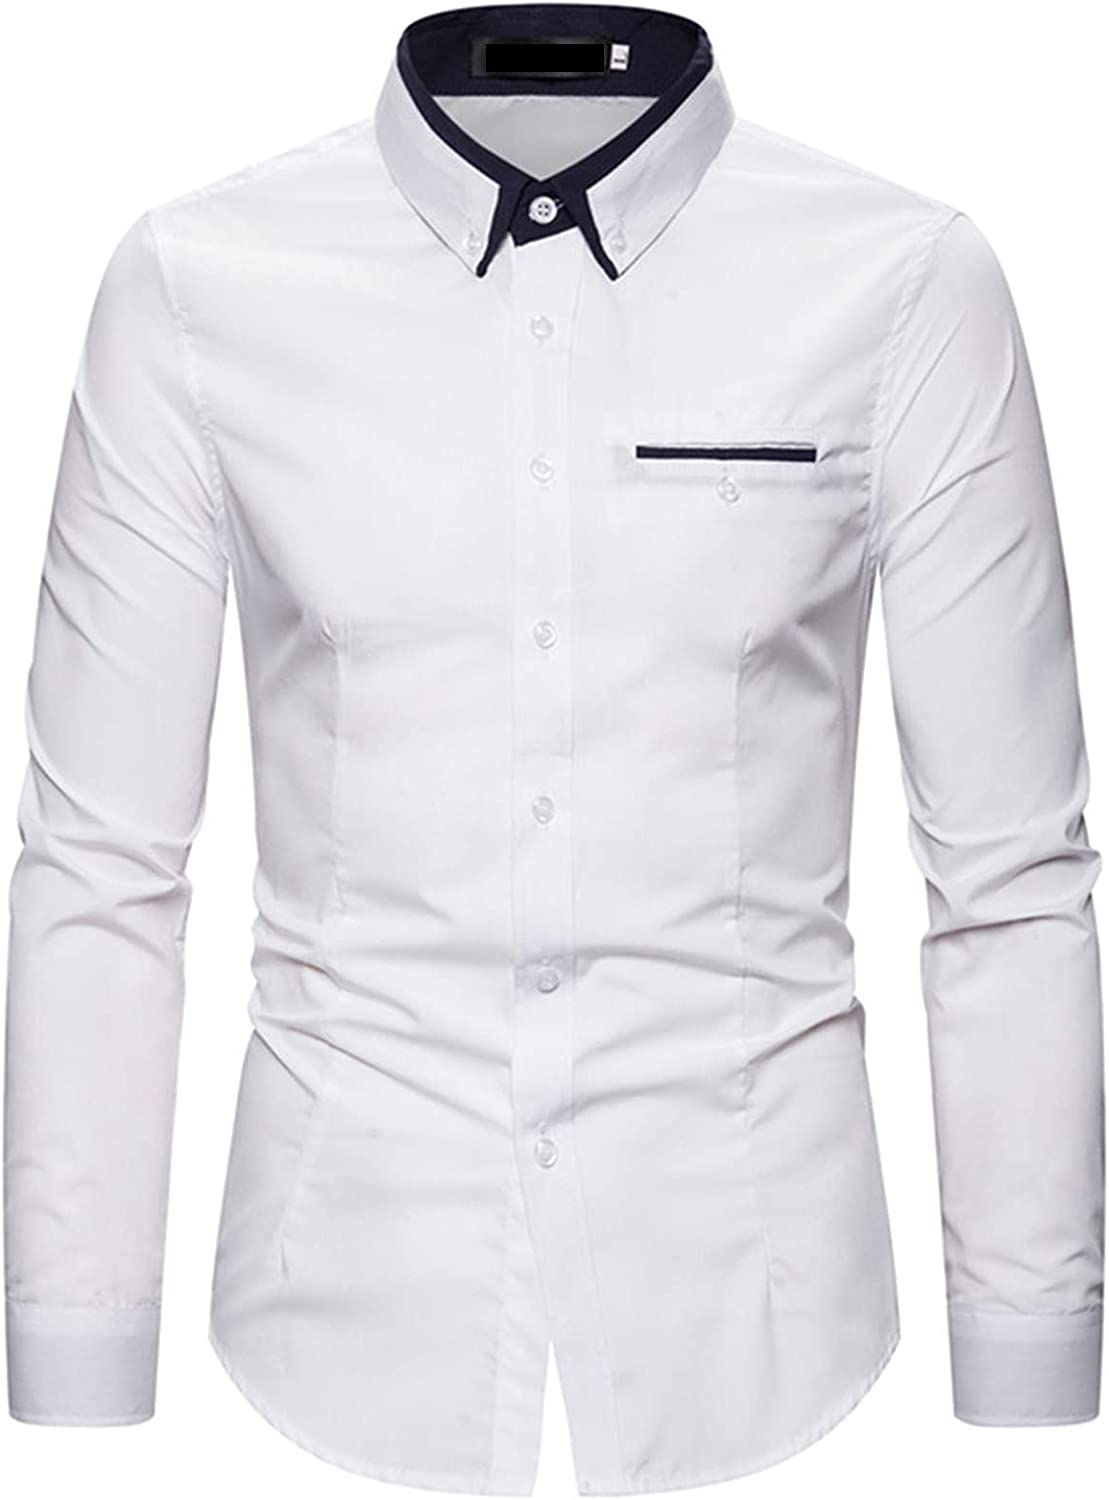 Men's Casual Dress Shirt Button Down Business Work Shirt Casual Fashion Slim Fit Long Sleeve Patchwork Tops